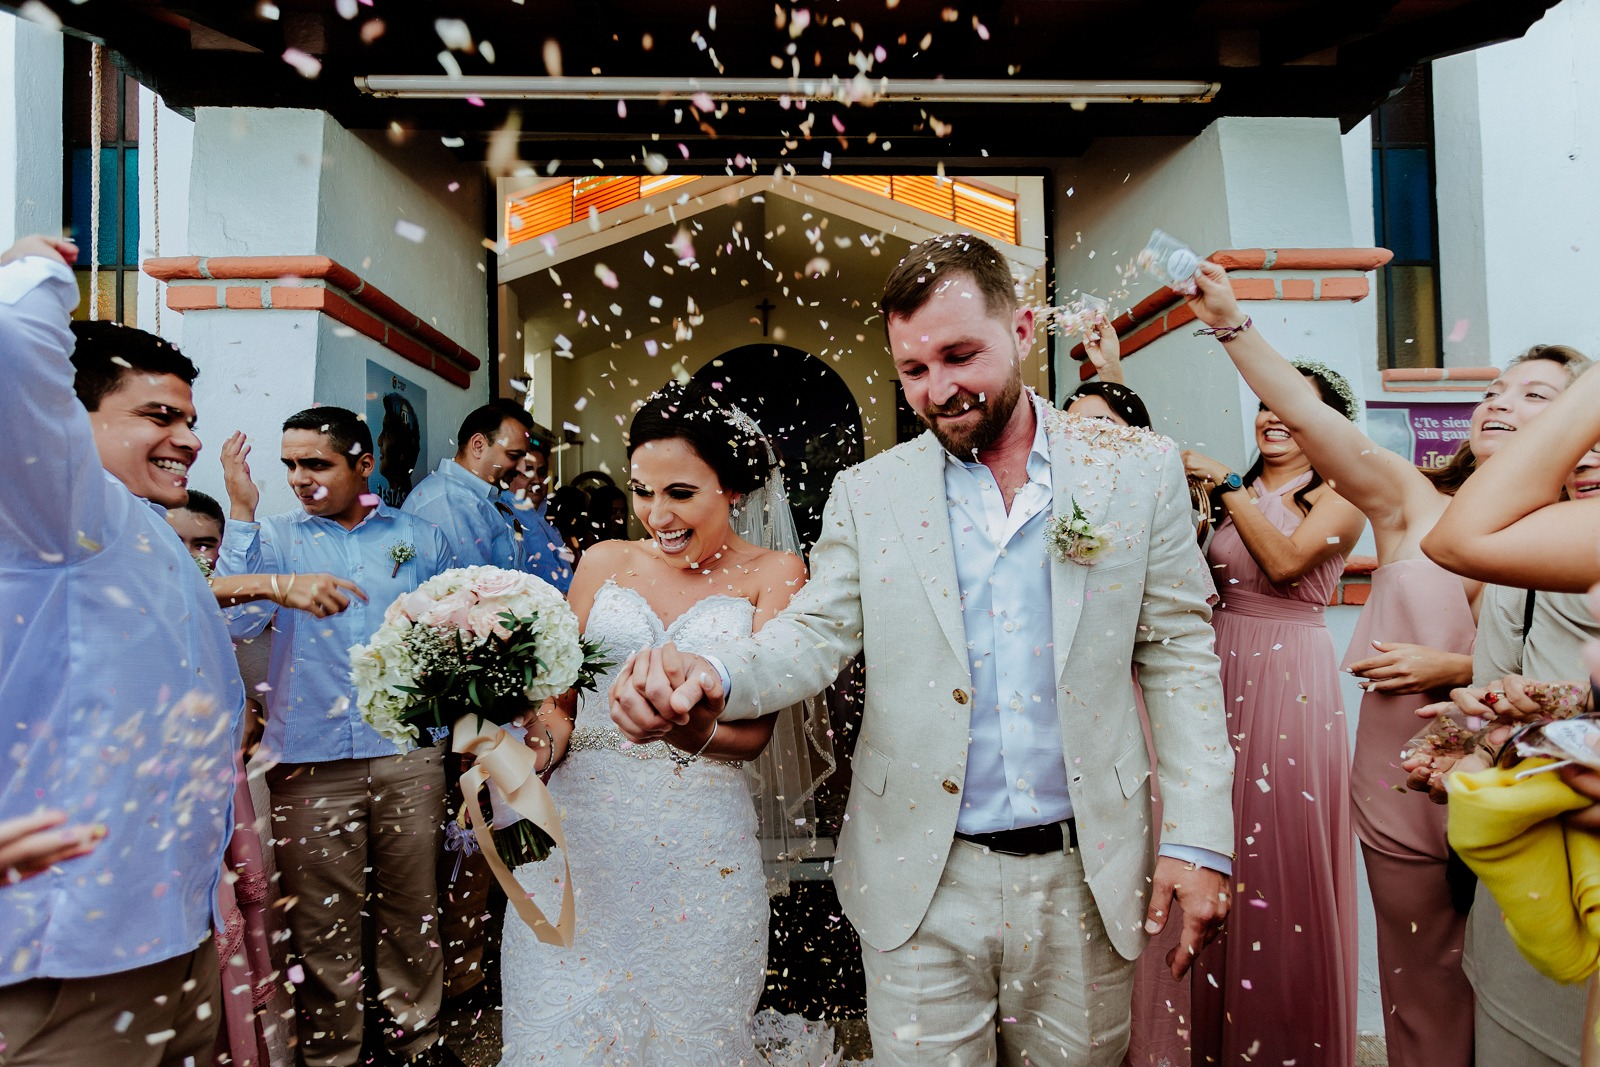 ceremony-confetti-bride-groom-church-friends-smile-flowers